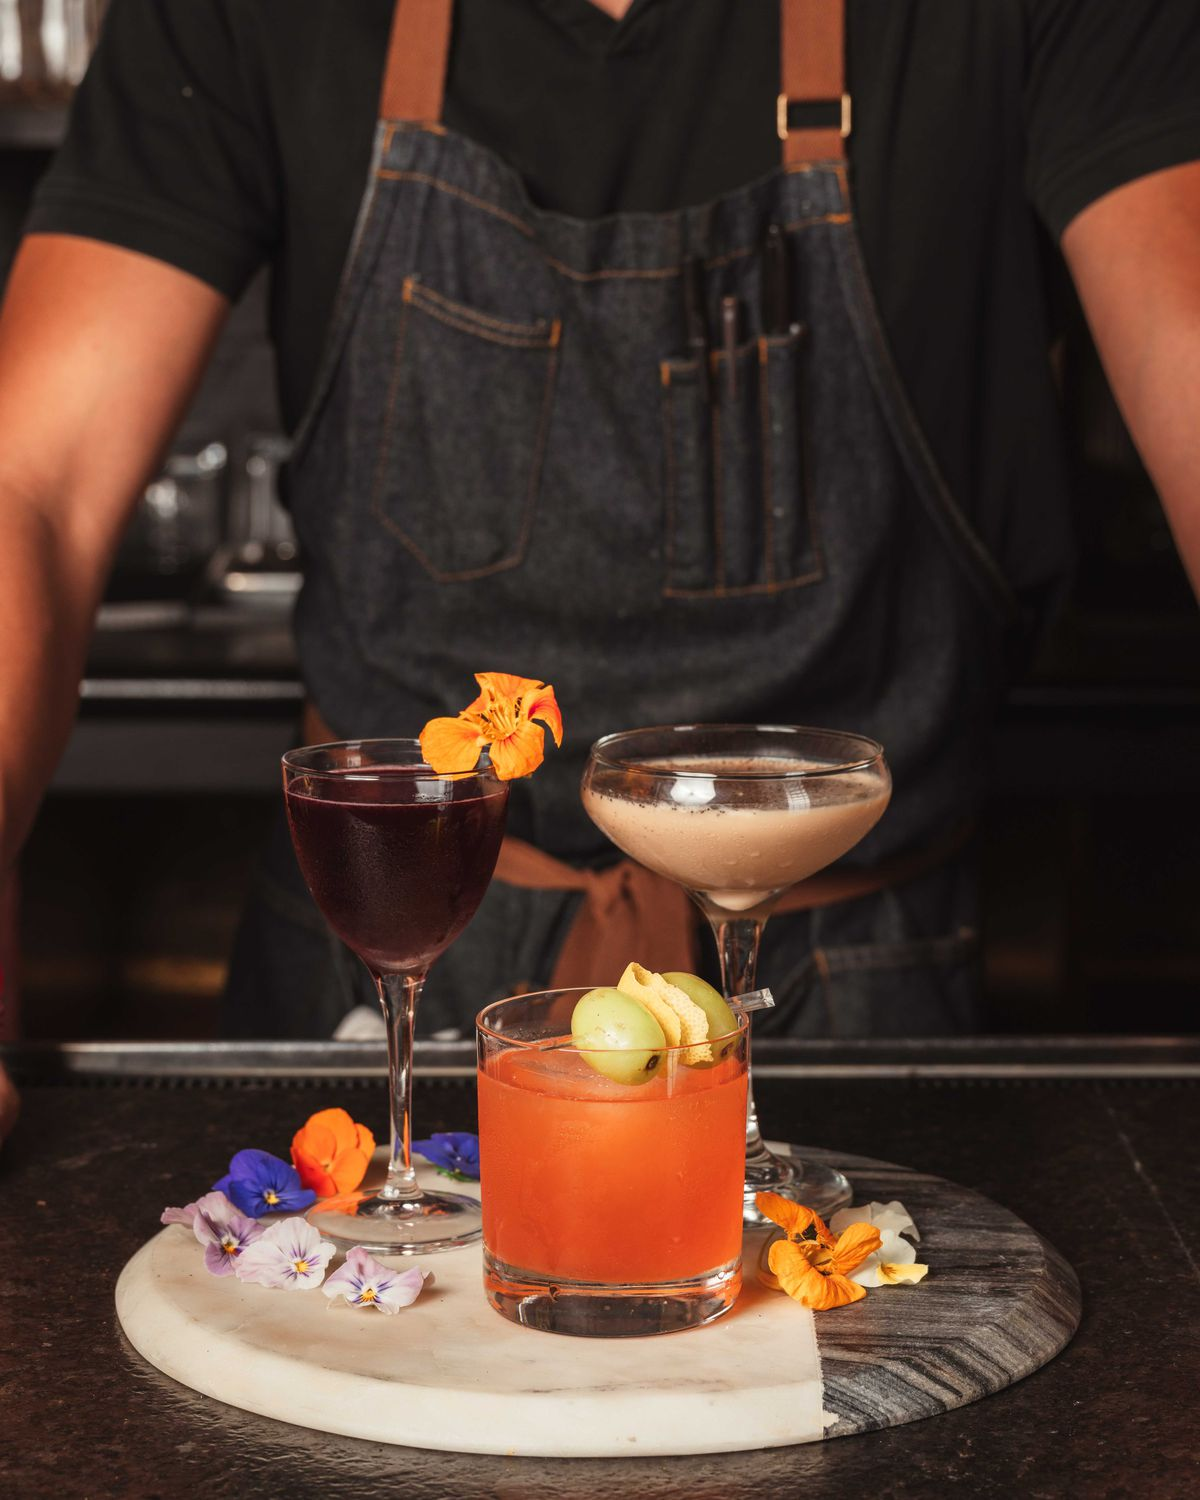 A bartender in a black t-shirt and denim apron is visible from the neck down, standing behind a bar on which there are three fancy cocktails displayed on a white and marble tray. Edible florals garnish the drinks and the tray.